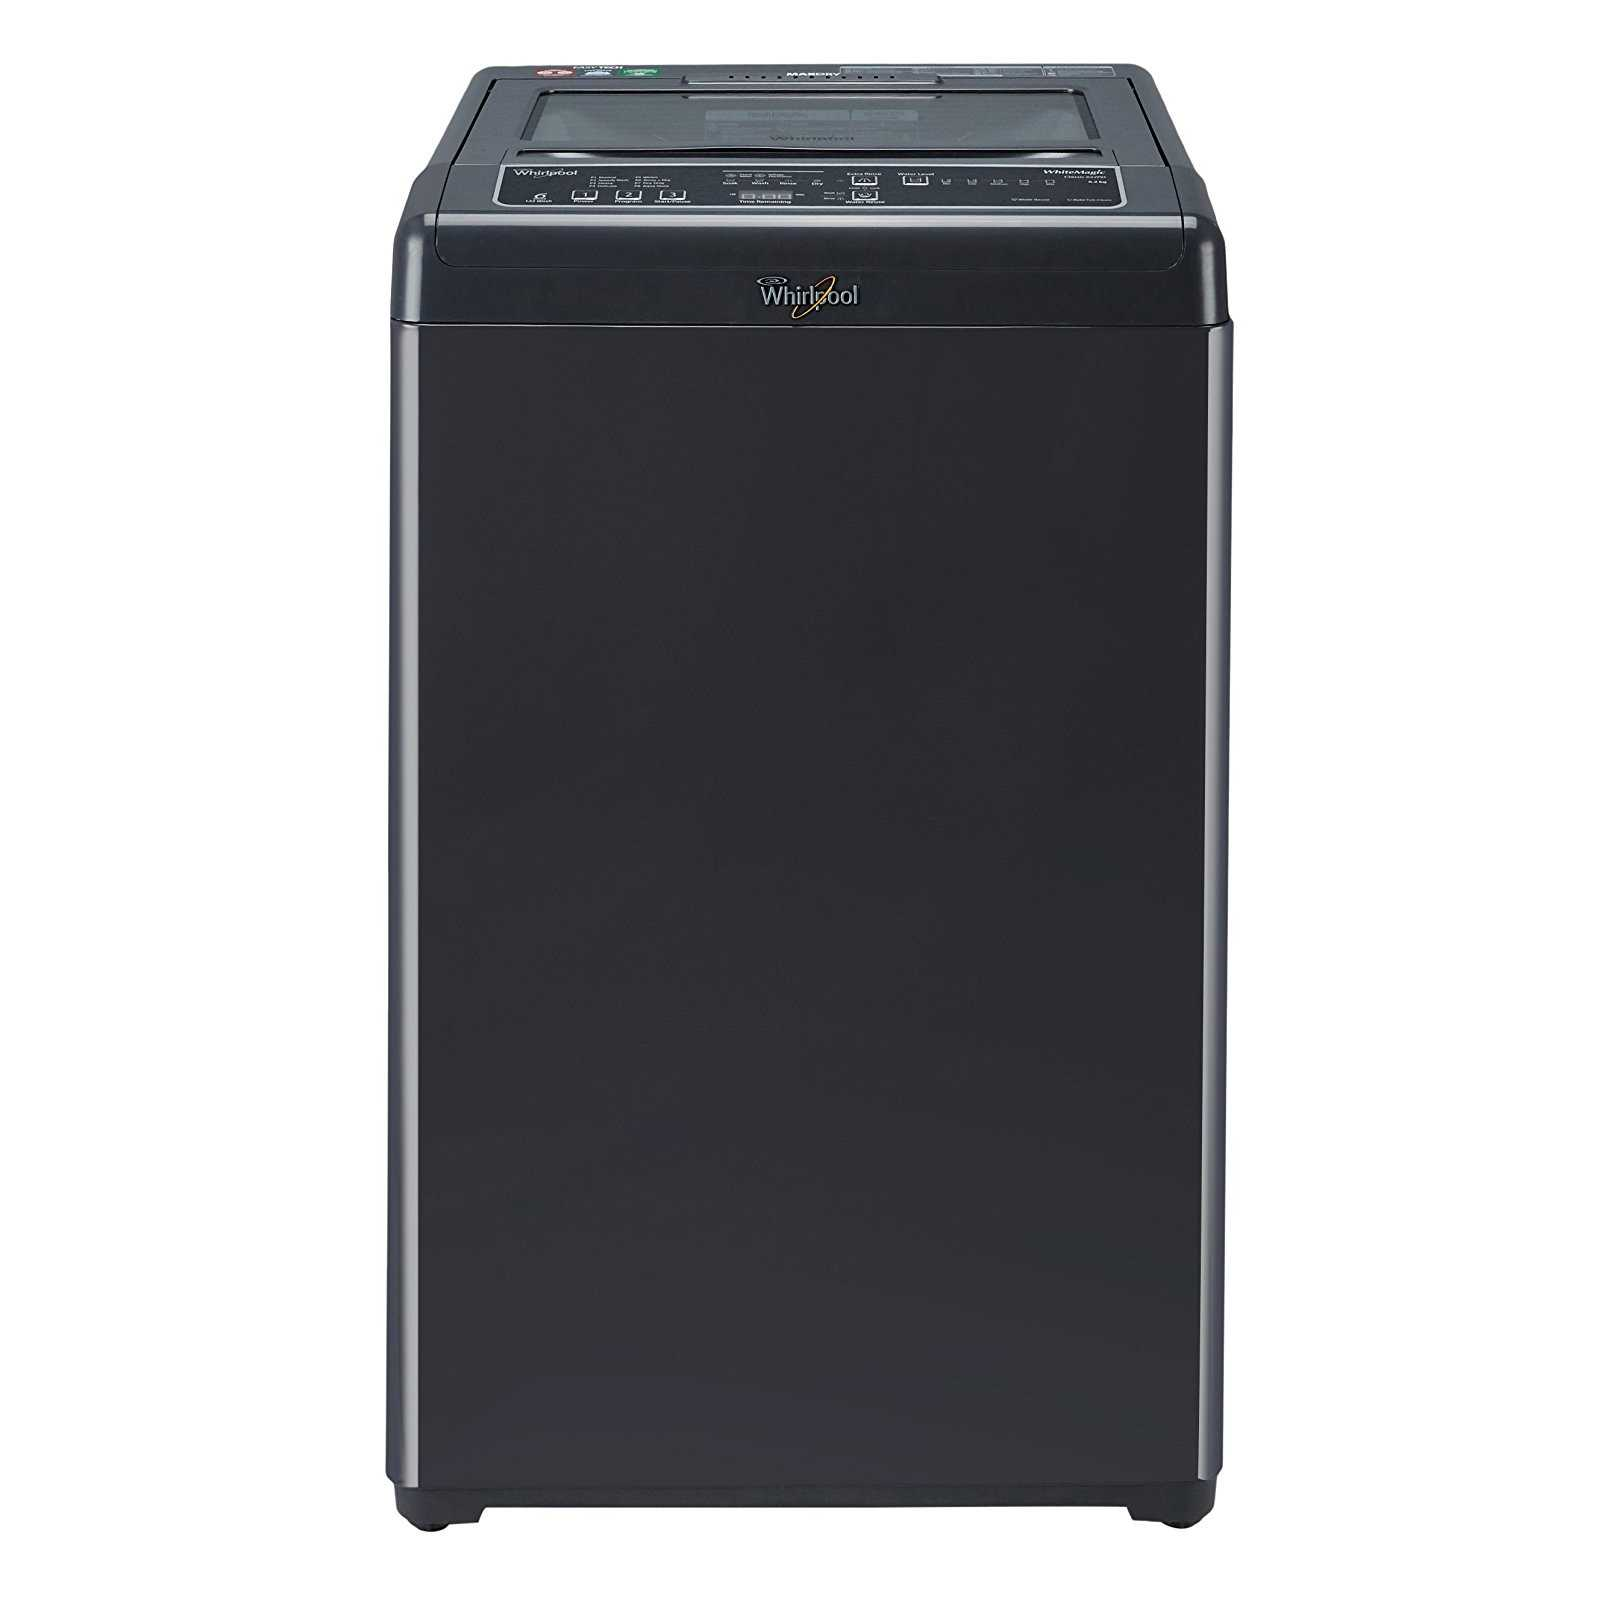 Whirlpool Classic 622 PD 6.2 Kg Fully Automatic Top Loading Washing Machine